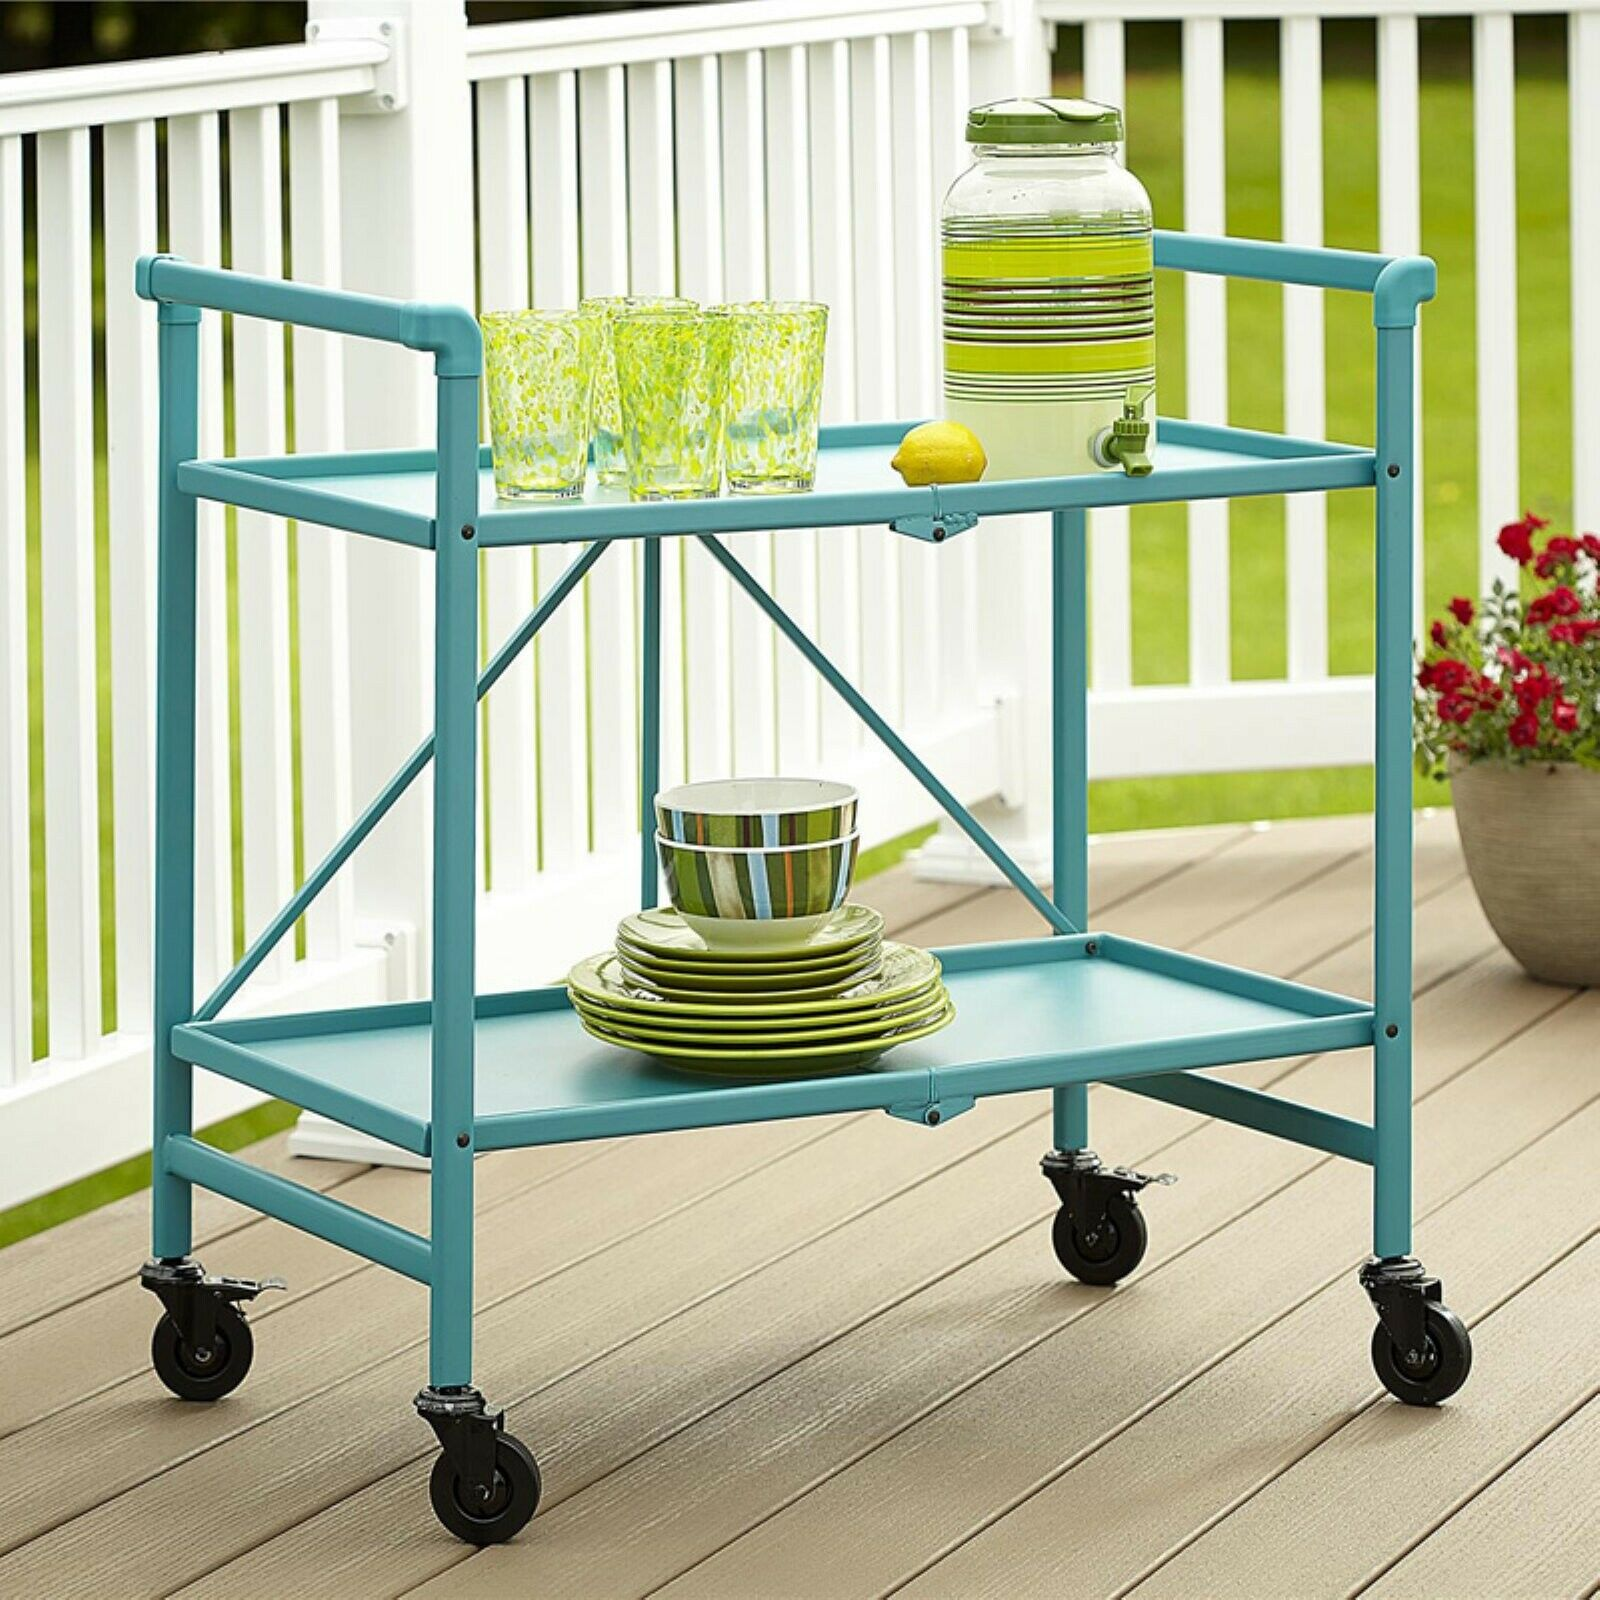 Storage Table On Wheels Details About Cosco Folding Serving Cart With Wheels Rolling Metal Storage Table Teal